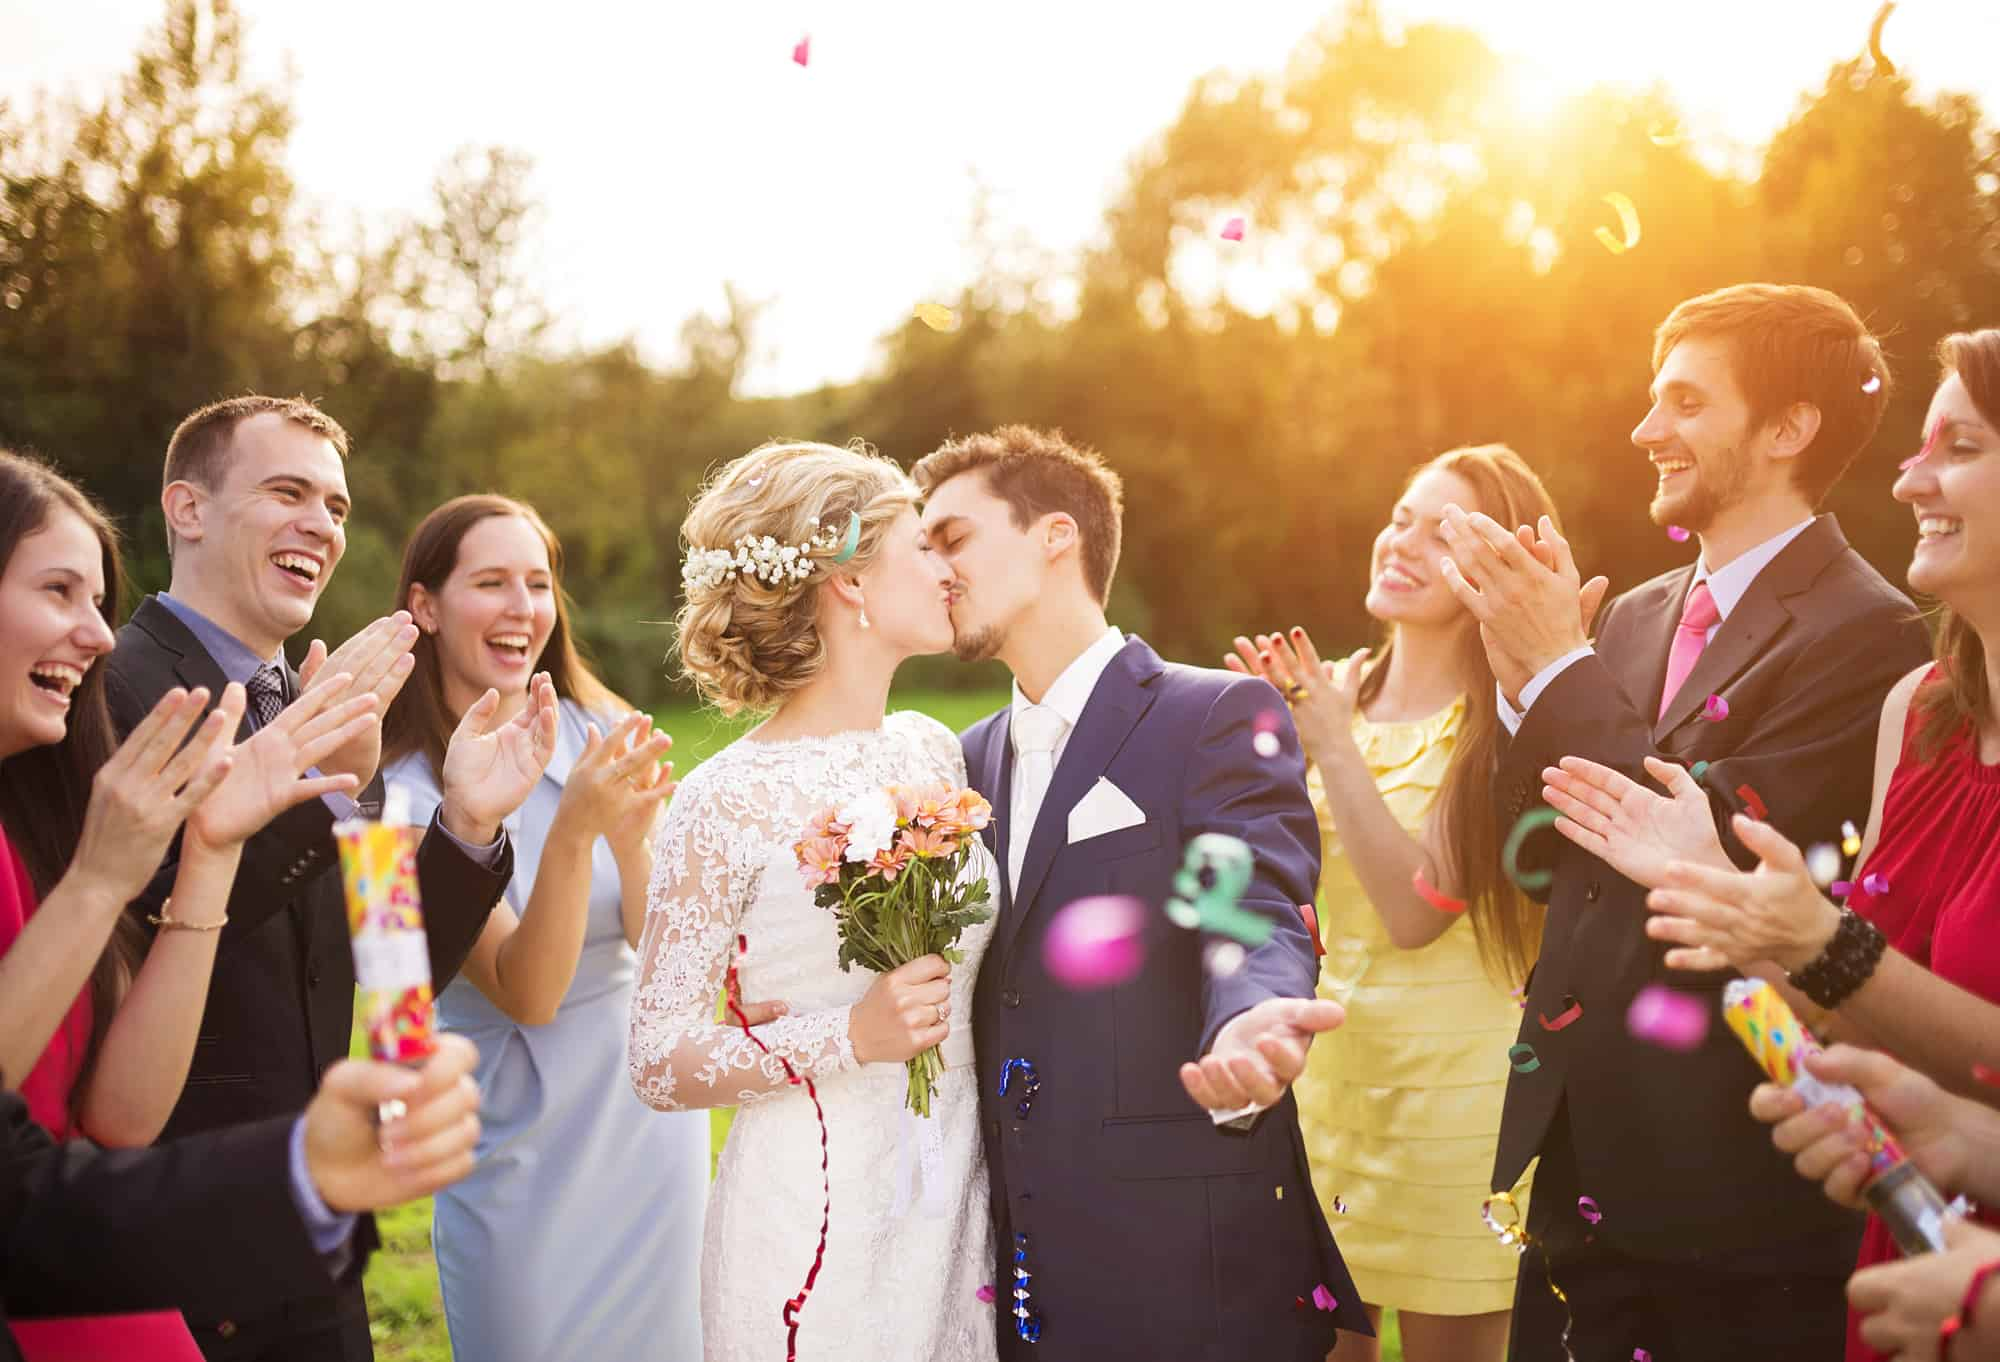 What You Should Wear to a Wedding in Slovakia